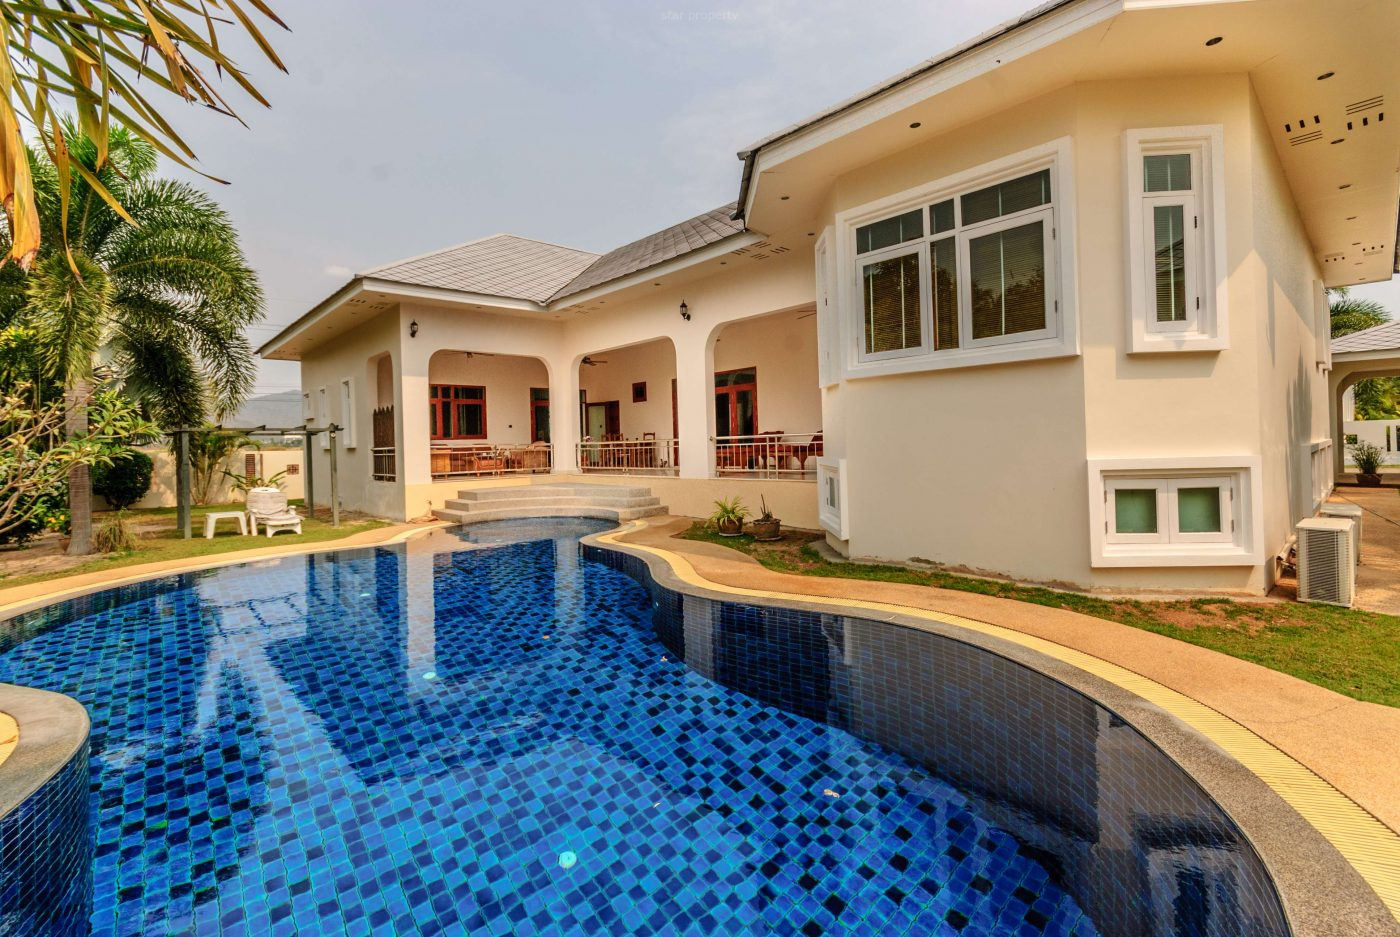 Top Quality 3 Bedroom Pool Villa at Near Black Mountain Water Park & Golf Course